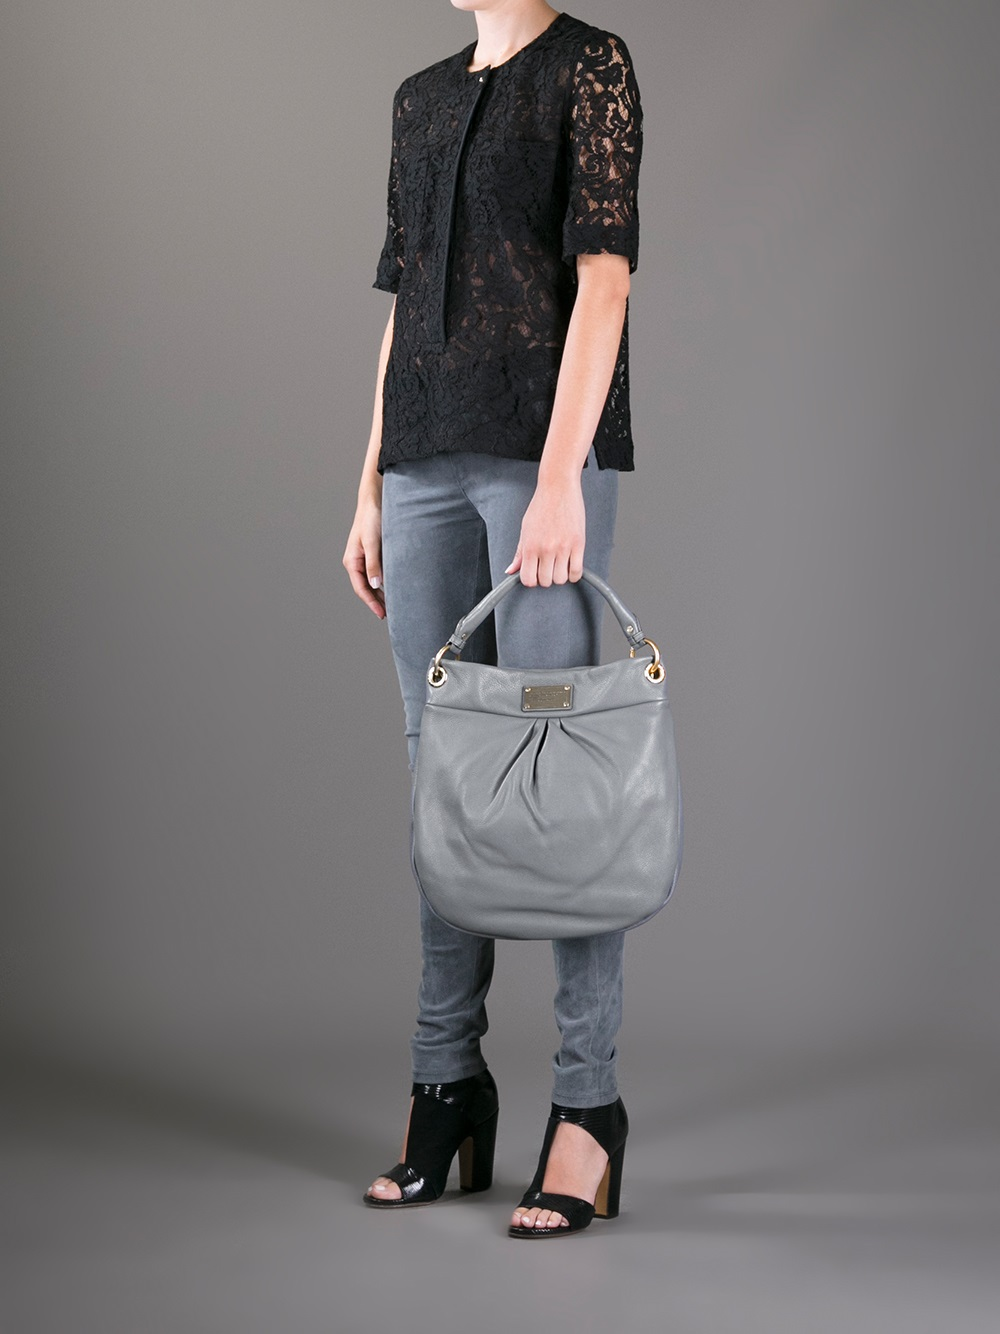 689e8e96b47 Marc By Marc Jacobs Hillier Hobo Classic Q Tote in Gray - Lyst